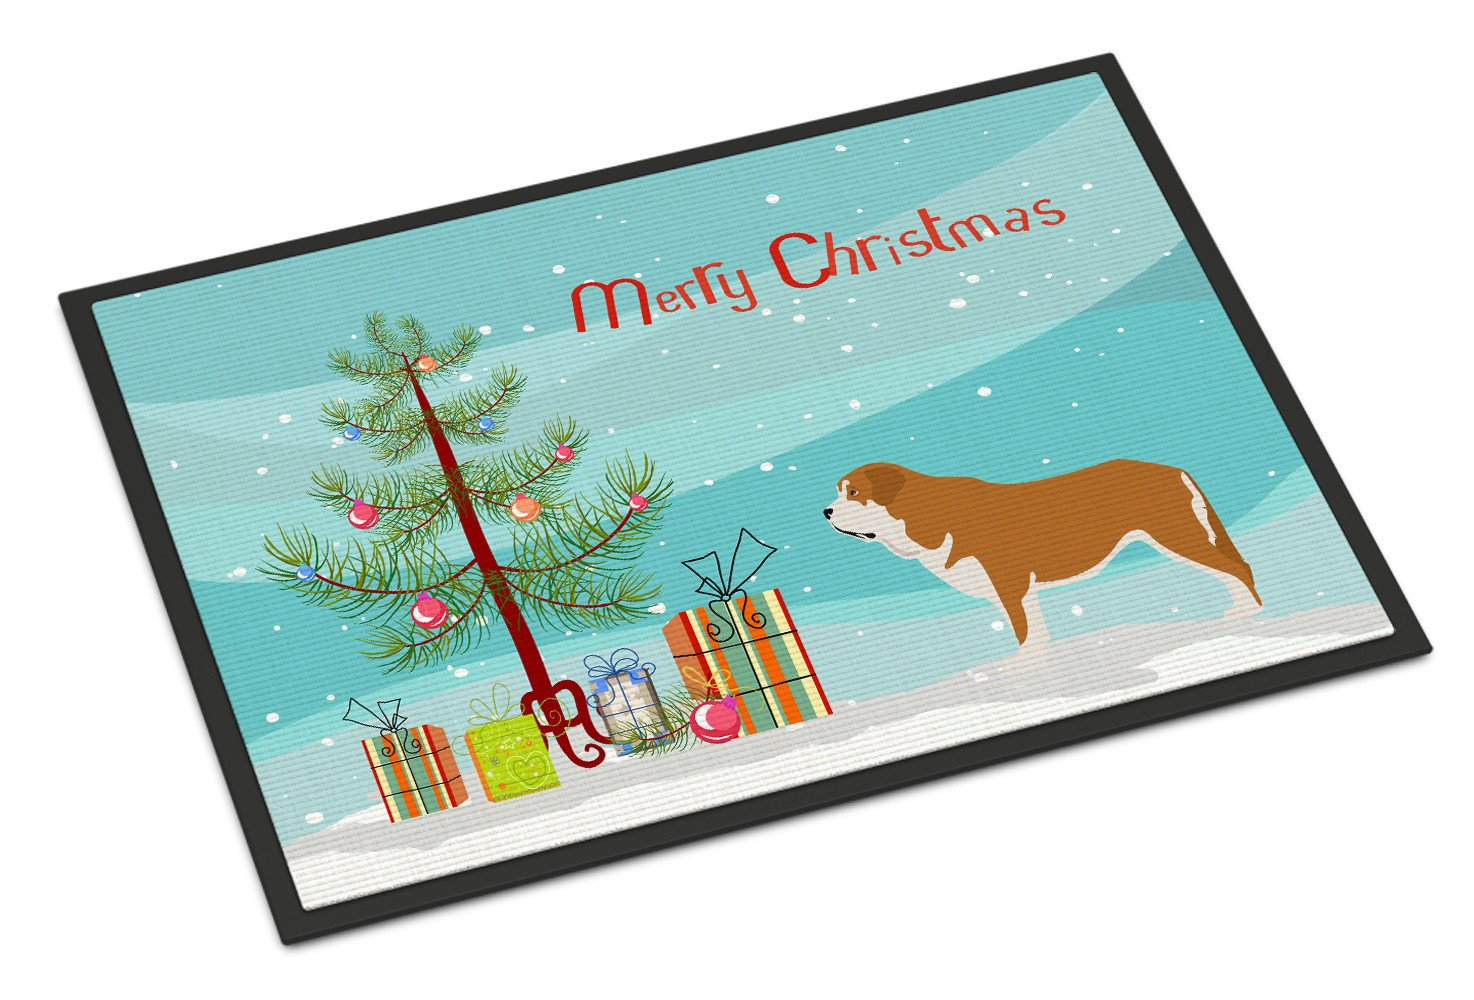 Mastin Epanol Spanish Mastiff Christmas Indoor or Outdoor Mat 24x36 BB8511JMAT by Caroline's Treasures